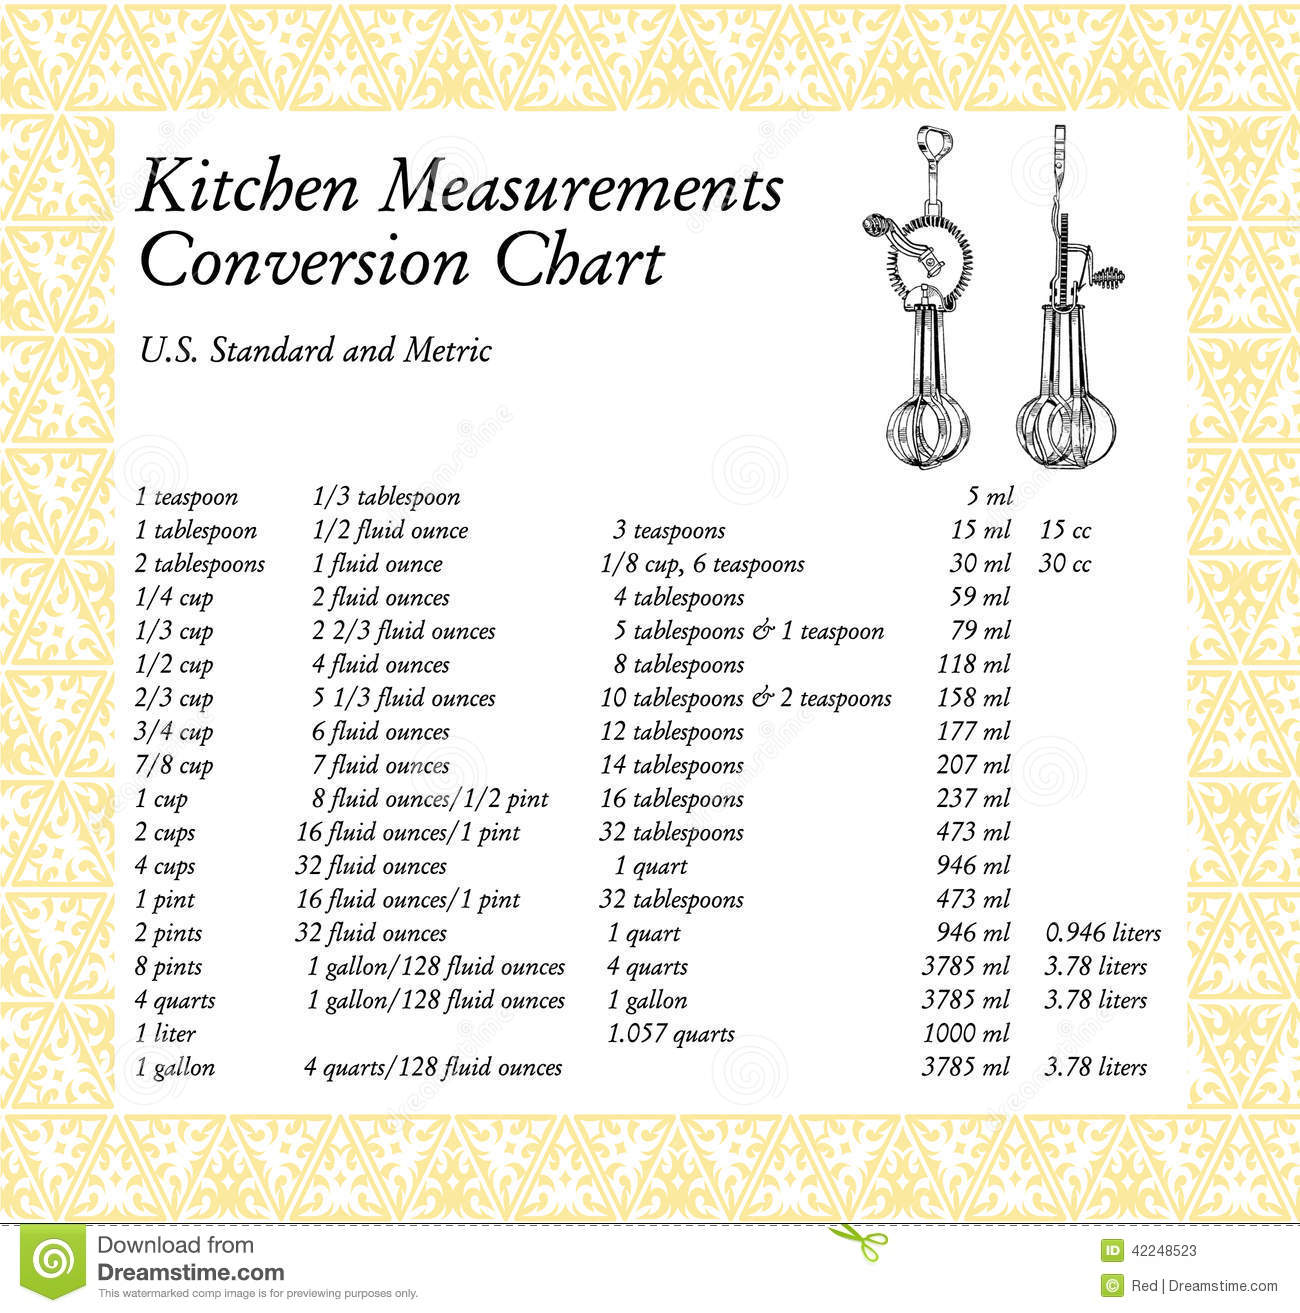 Liquid measurement conversion chart targergolden dragon liquid measurement conversion chart nvjuhfo Gallery